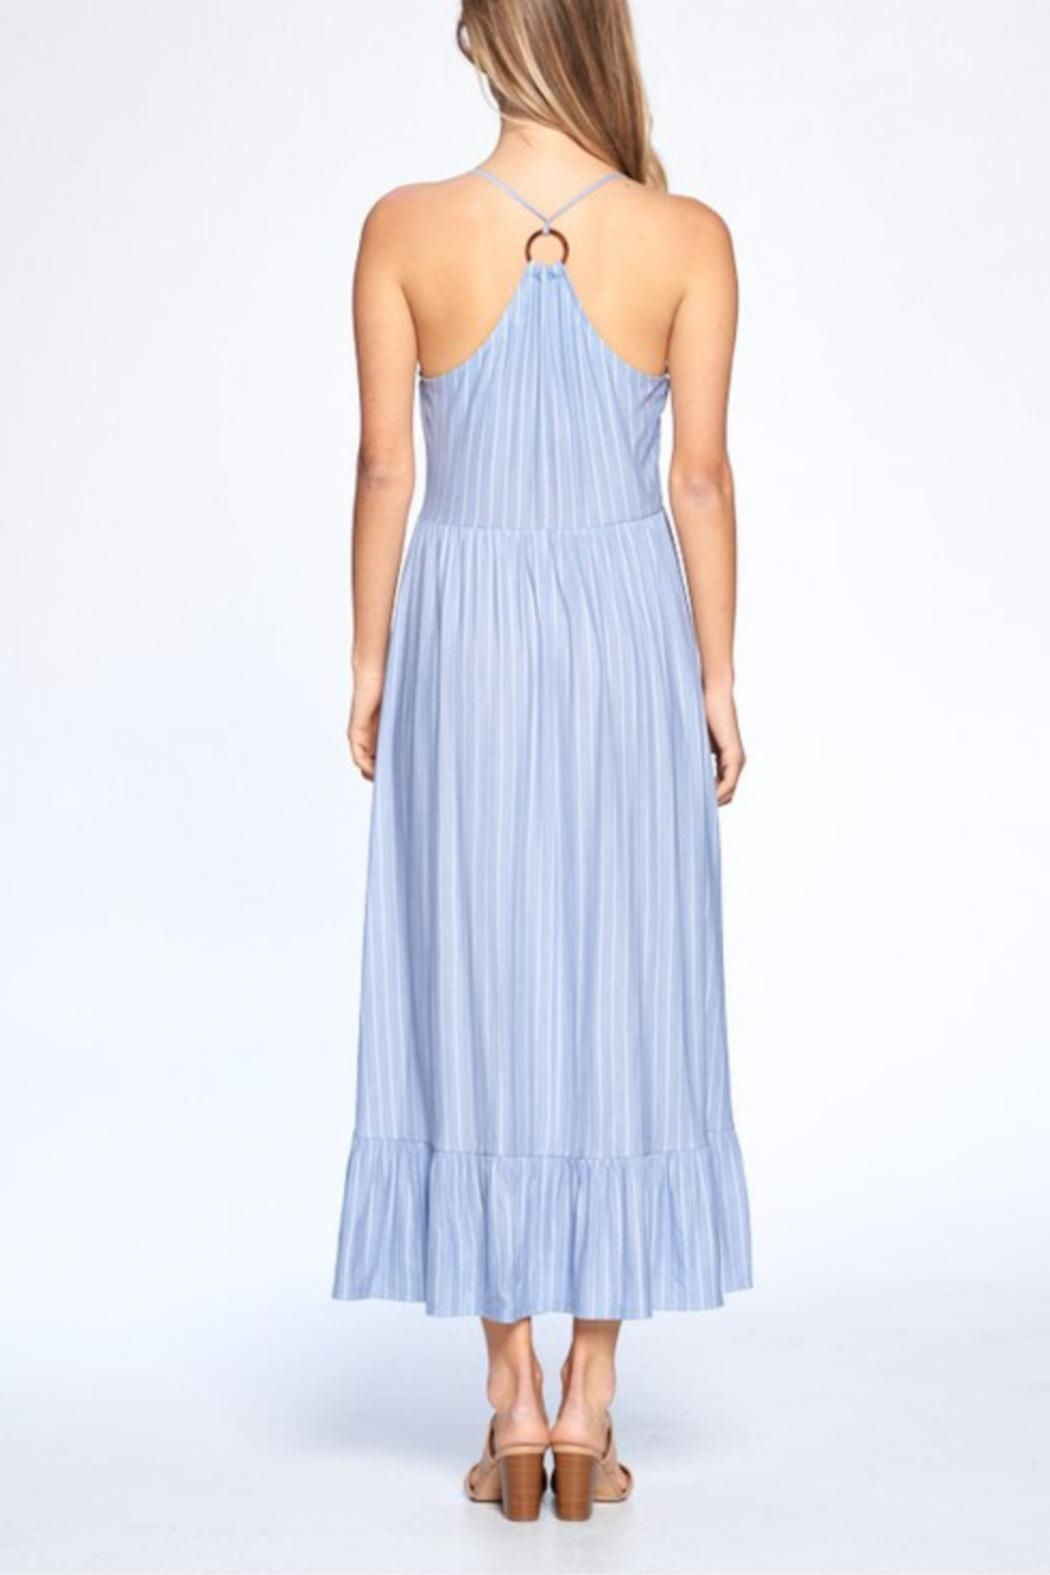 crescent Shannon Striped Dress - Back Cropped Image